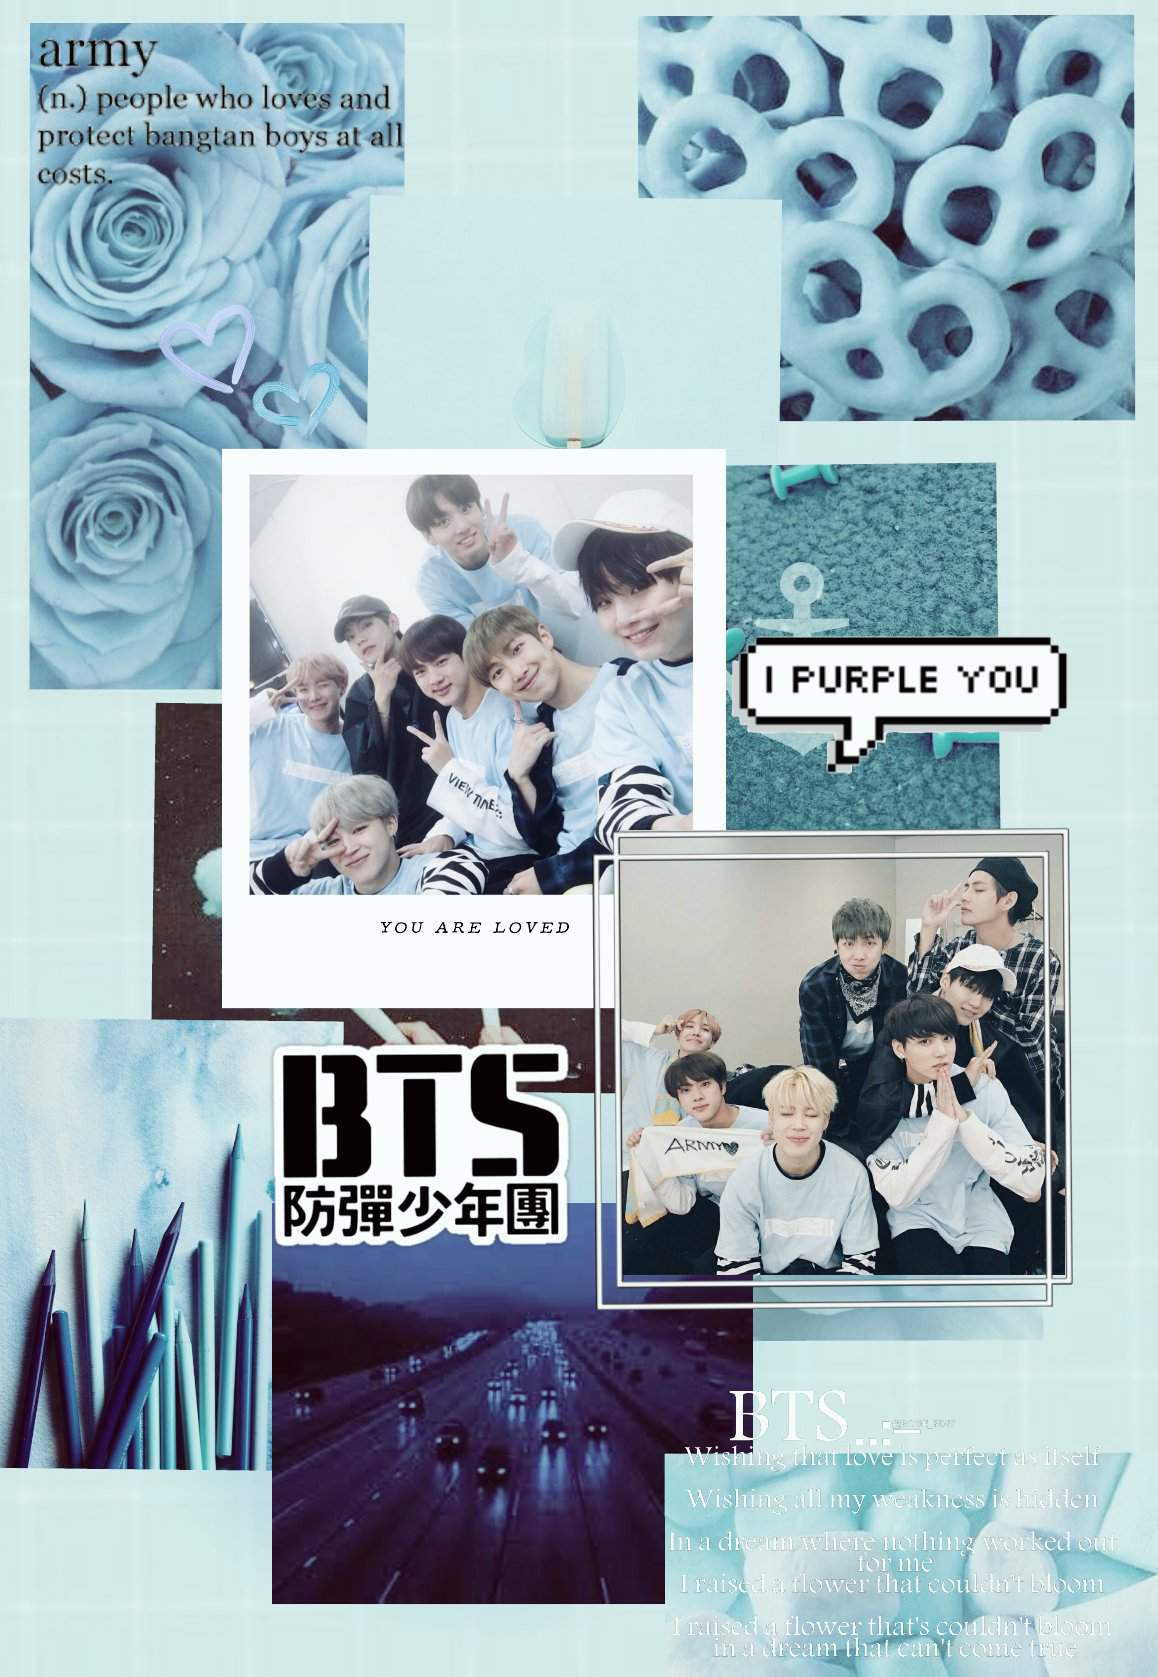 Bts Aesthetic Background And Logo Army S Amino